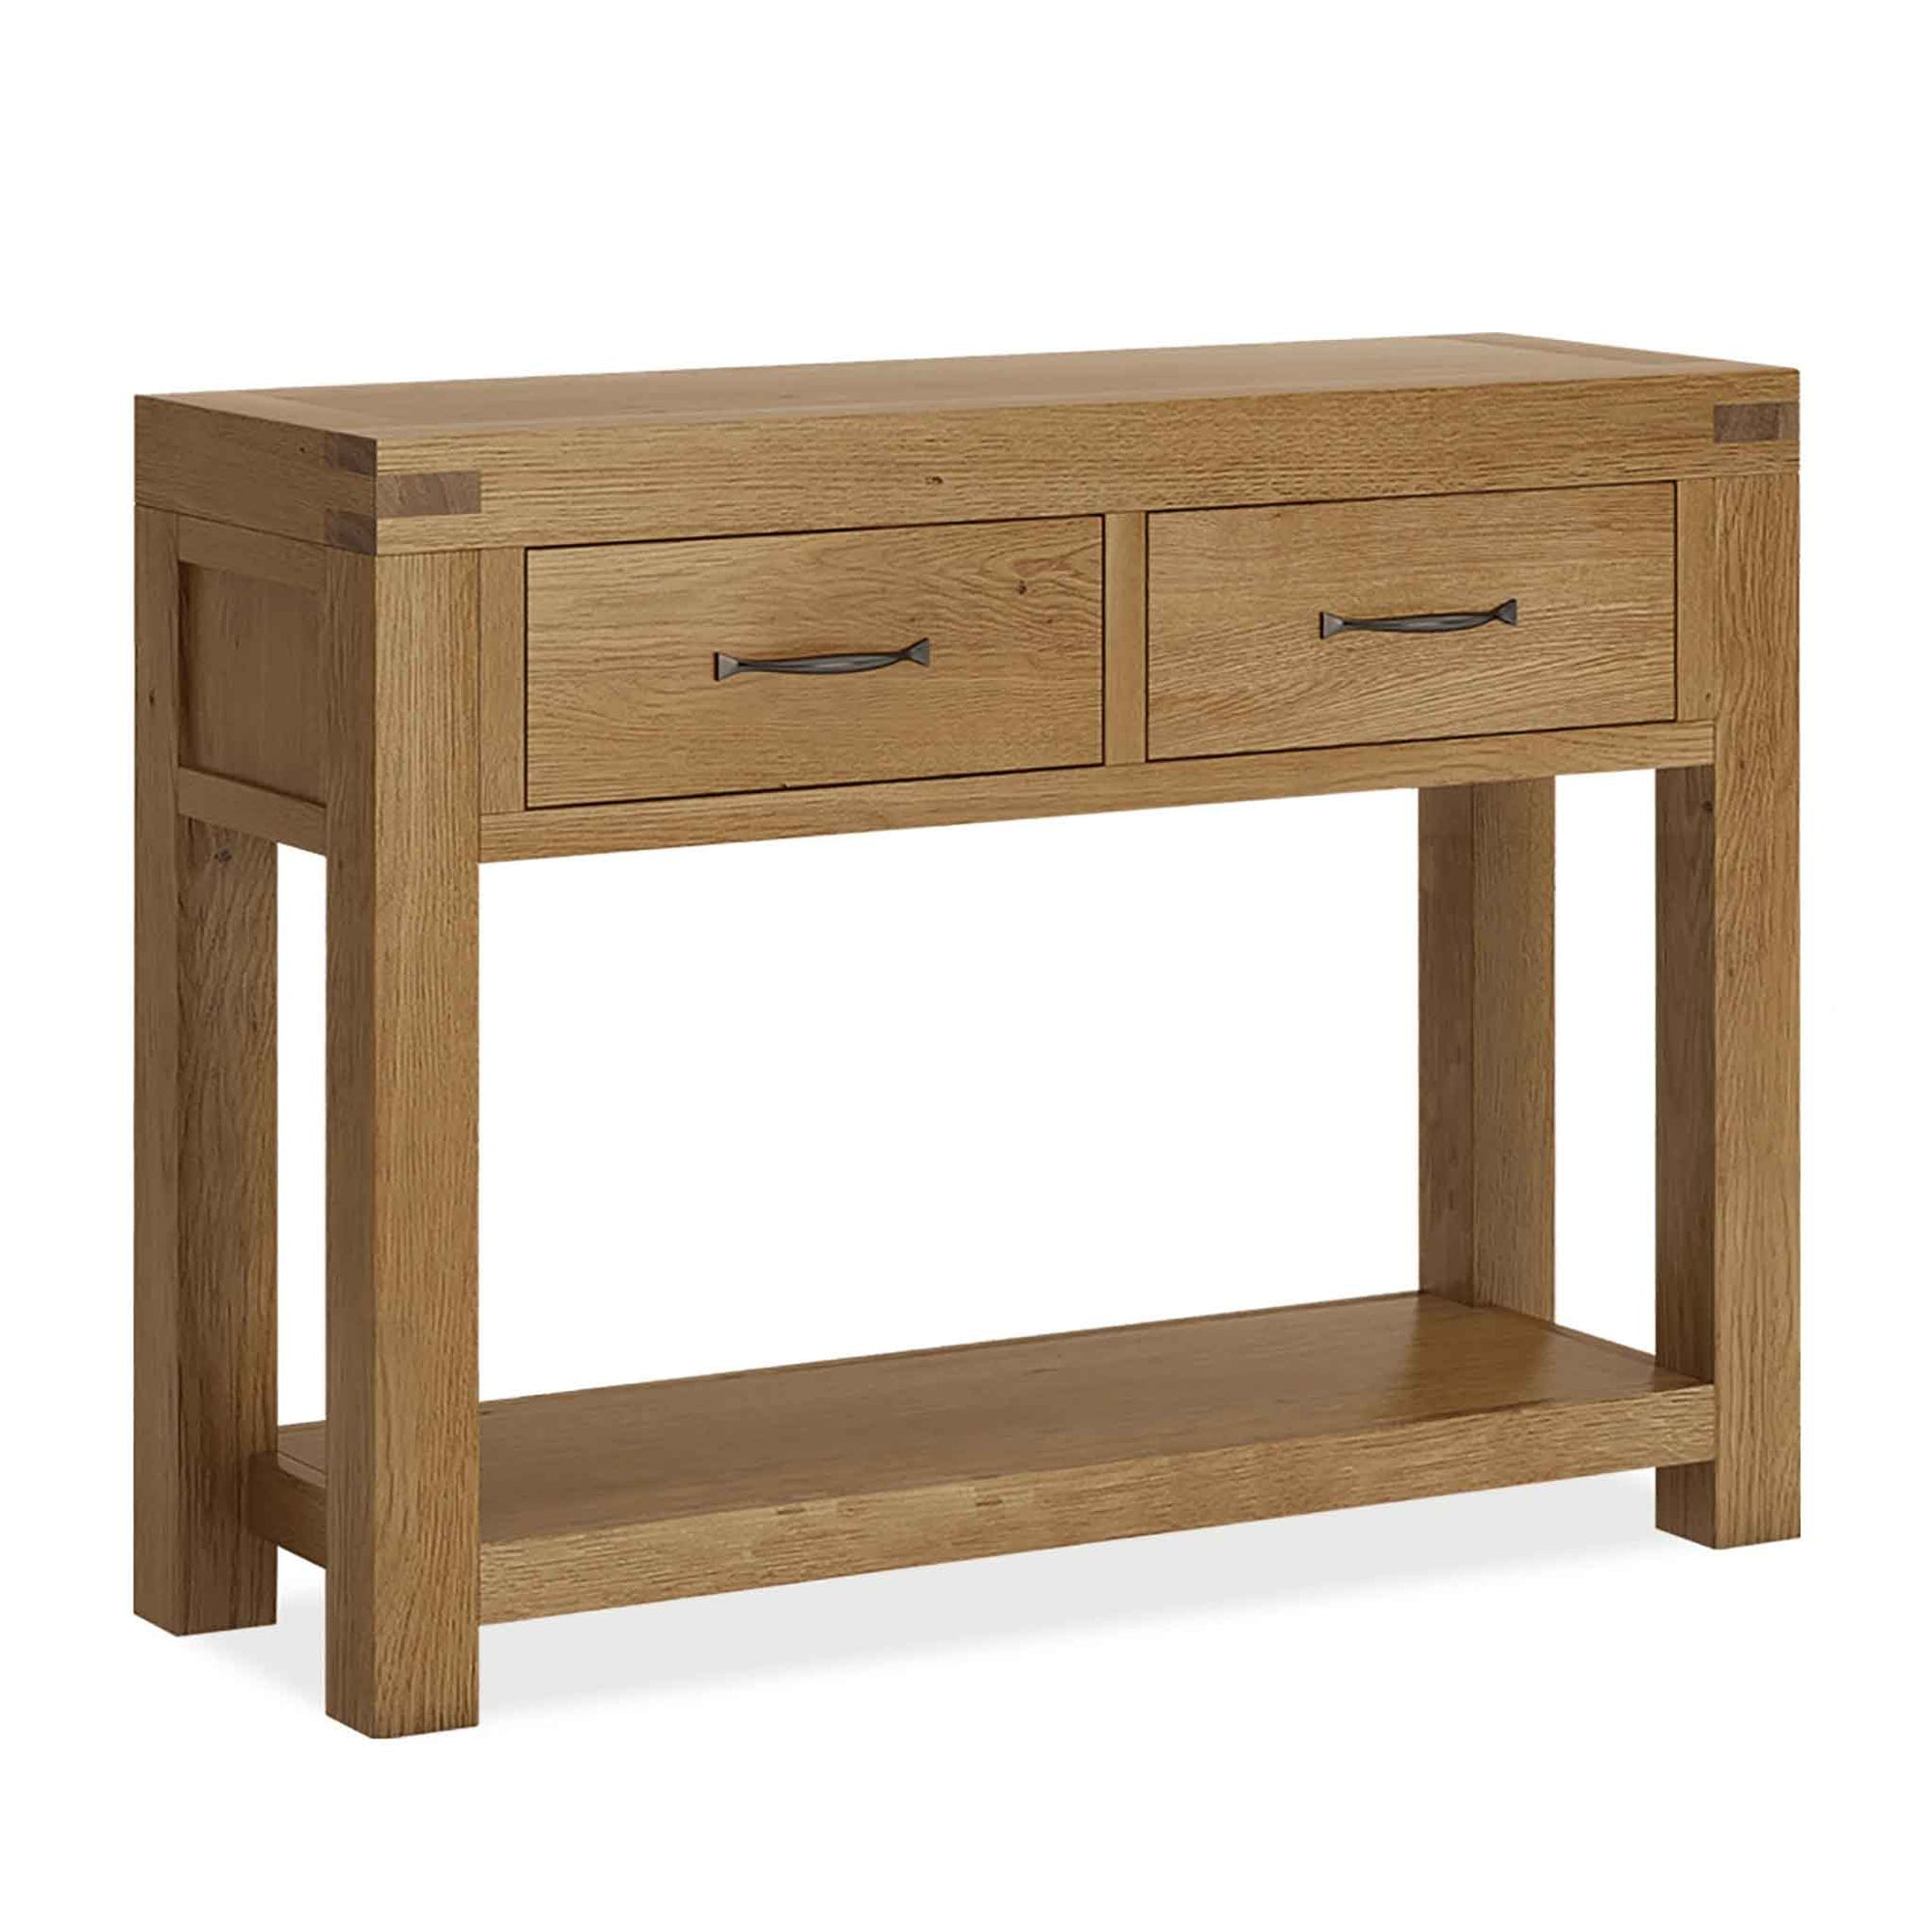 The Abbey Grande Oak Console Table with Drawers by Roseland Furniture